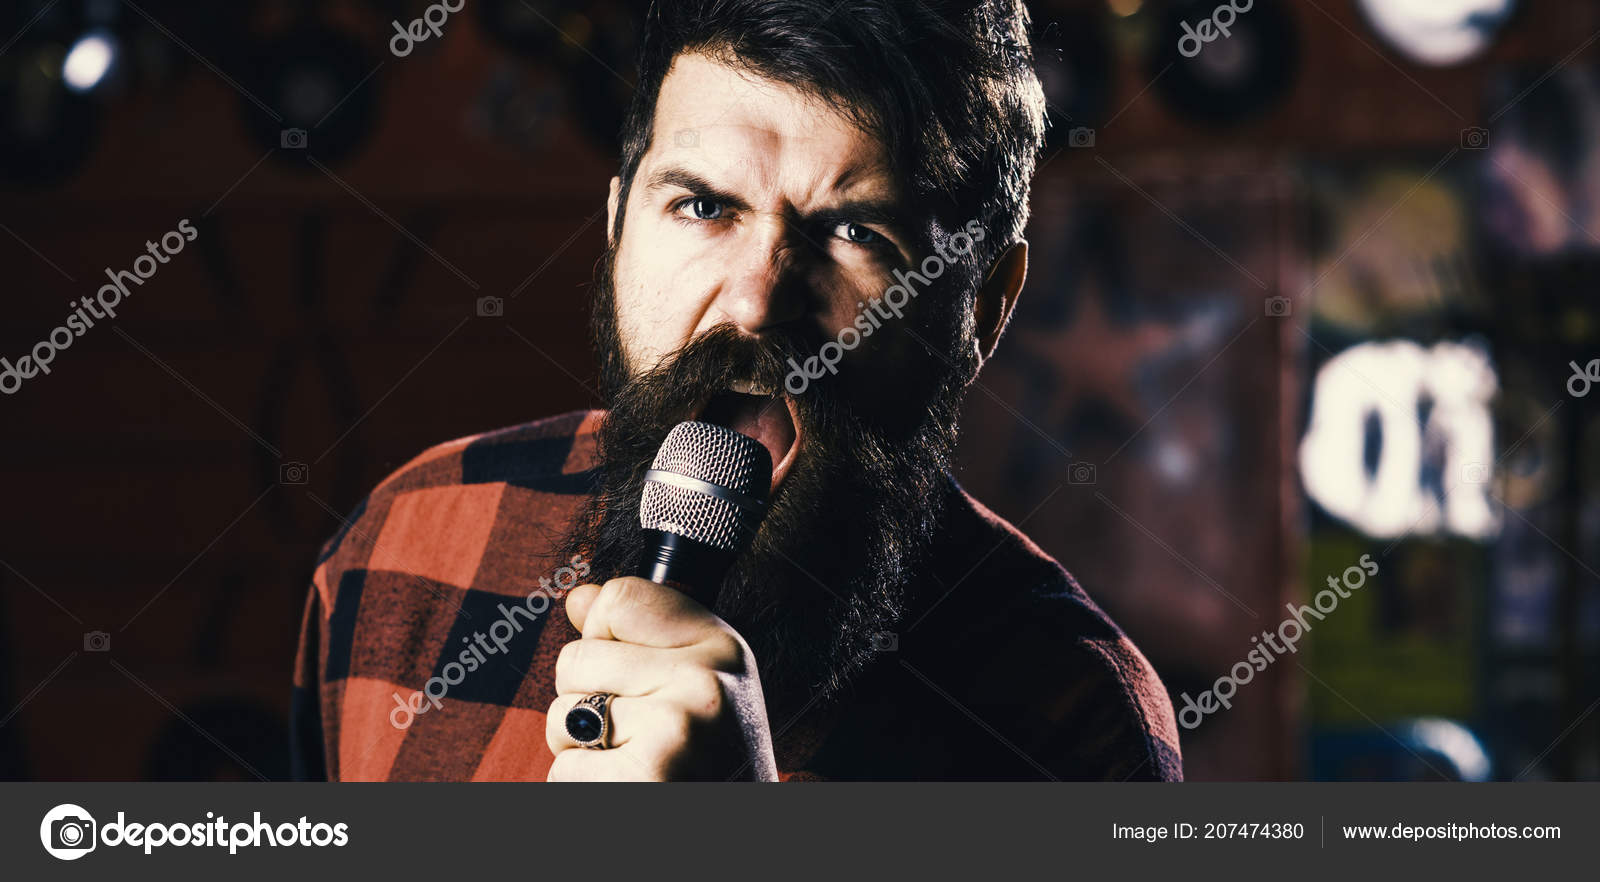 Man with agressive face holds microphone, singing song, karaoke club